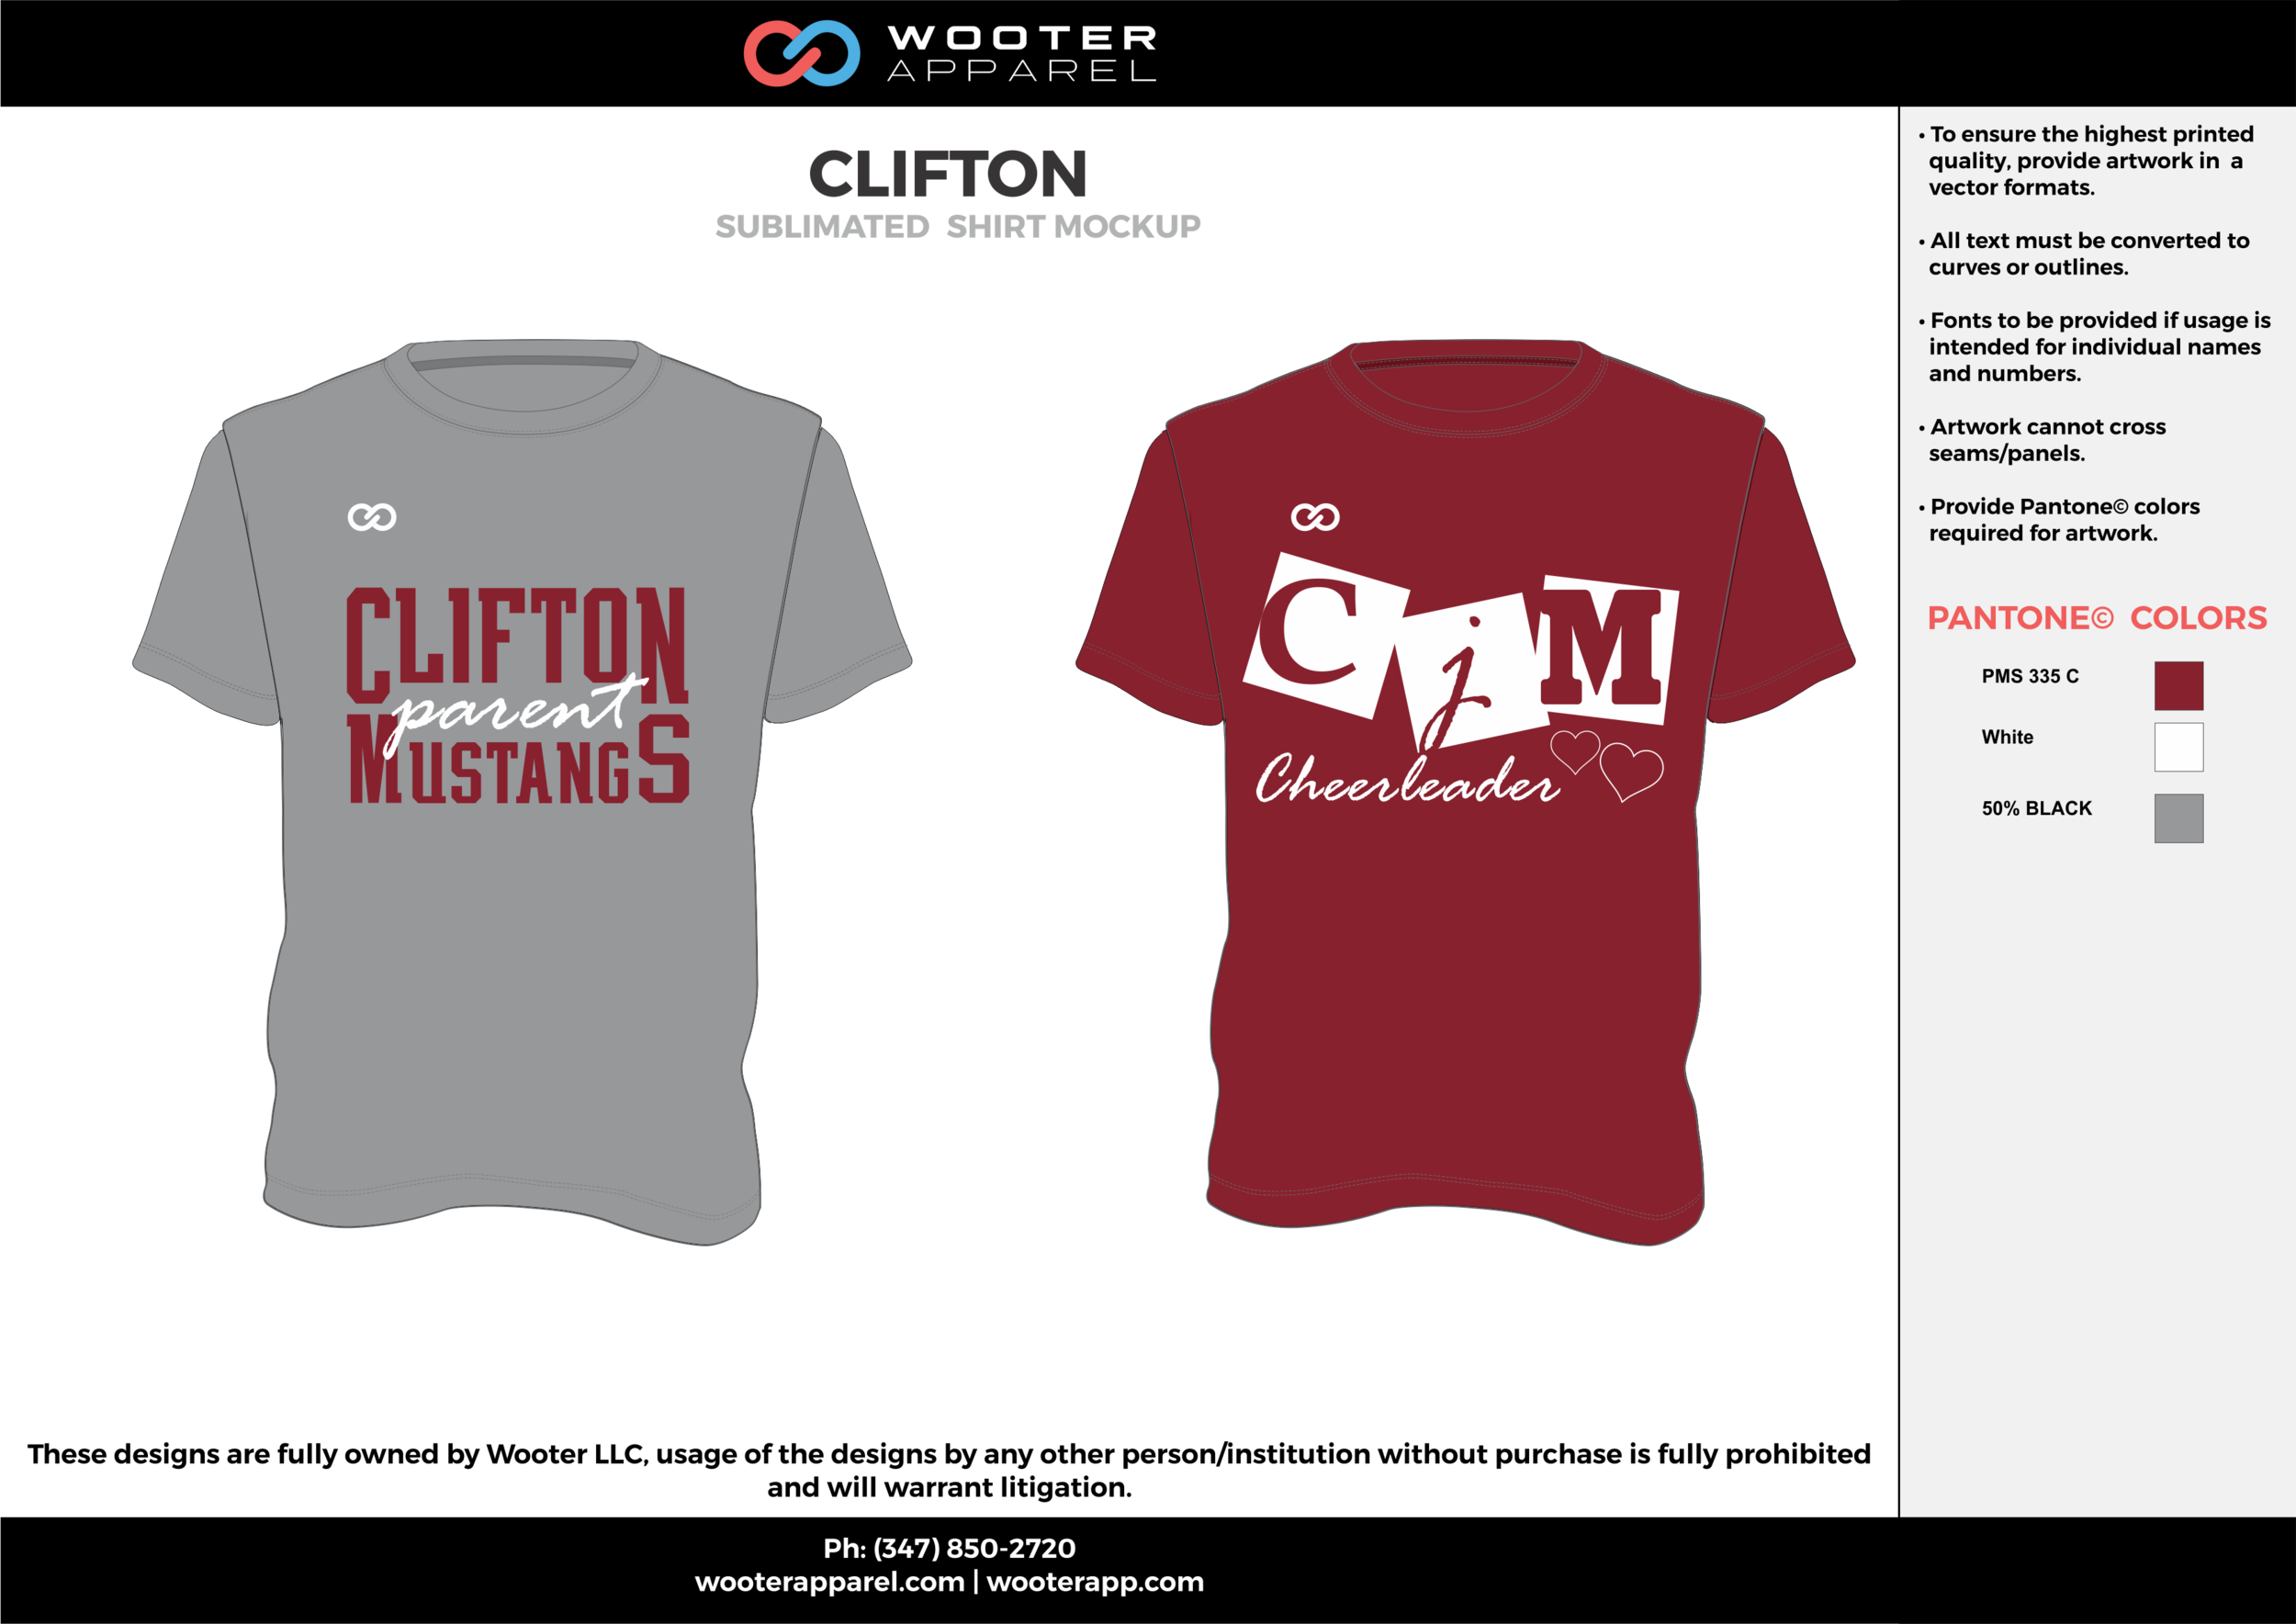 CLIFTON cool gray maroon white custom design t-shirts